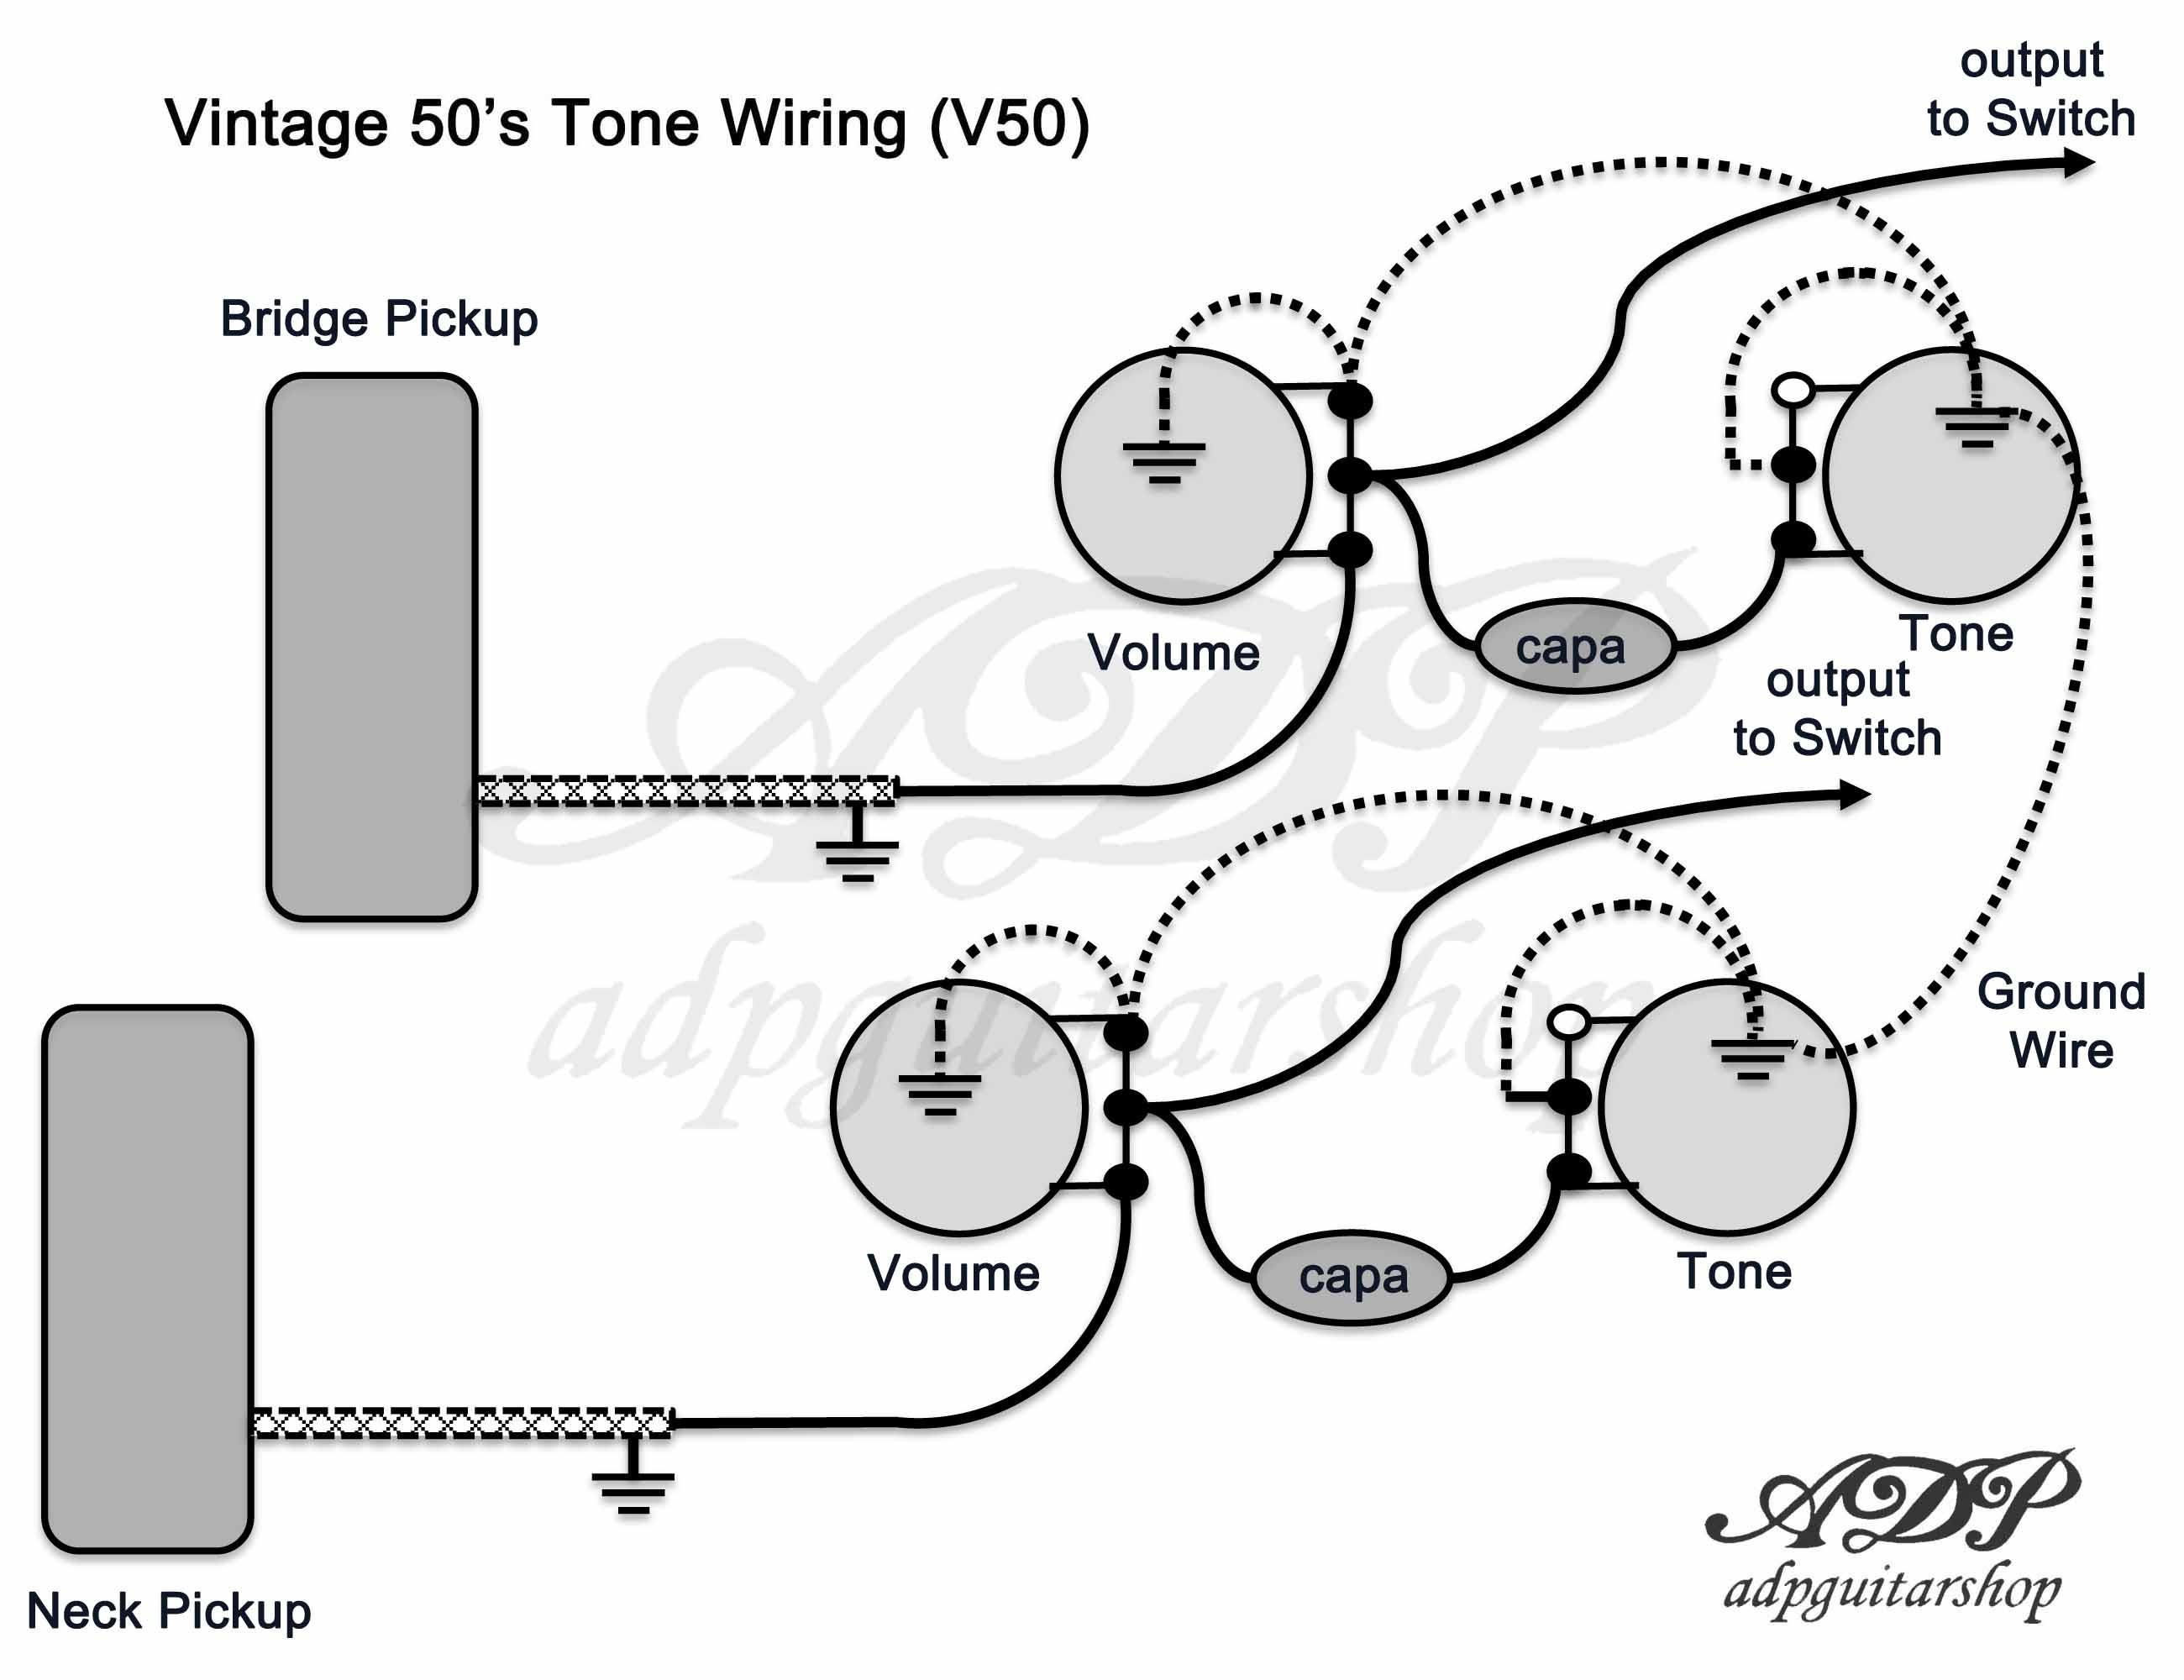 epiphone les paul special wiring diagram Download-Gibson Les Paul Special Wiring Diagram Valid Les Paul Special Wiring Diagram Refrence Wiring Diagram For Epiphone 11-s